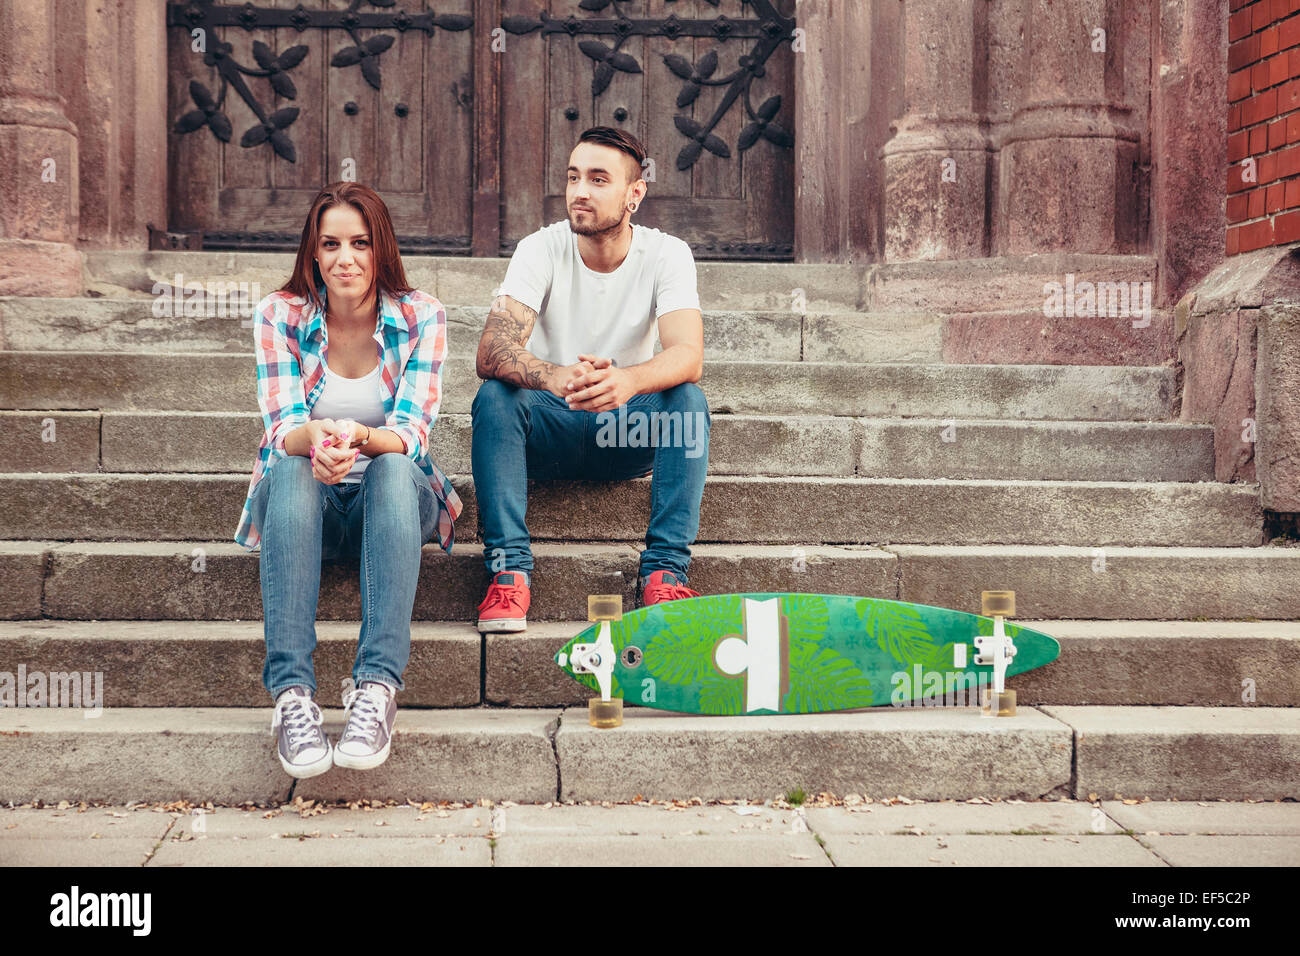 Young couple with skateboard taking a break on staircase Stock Photo